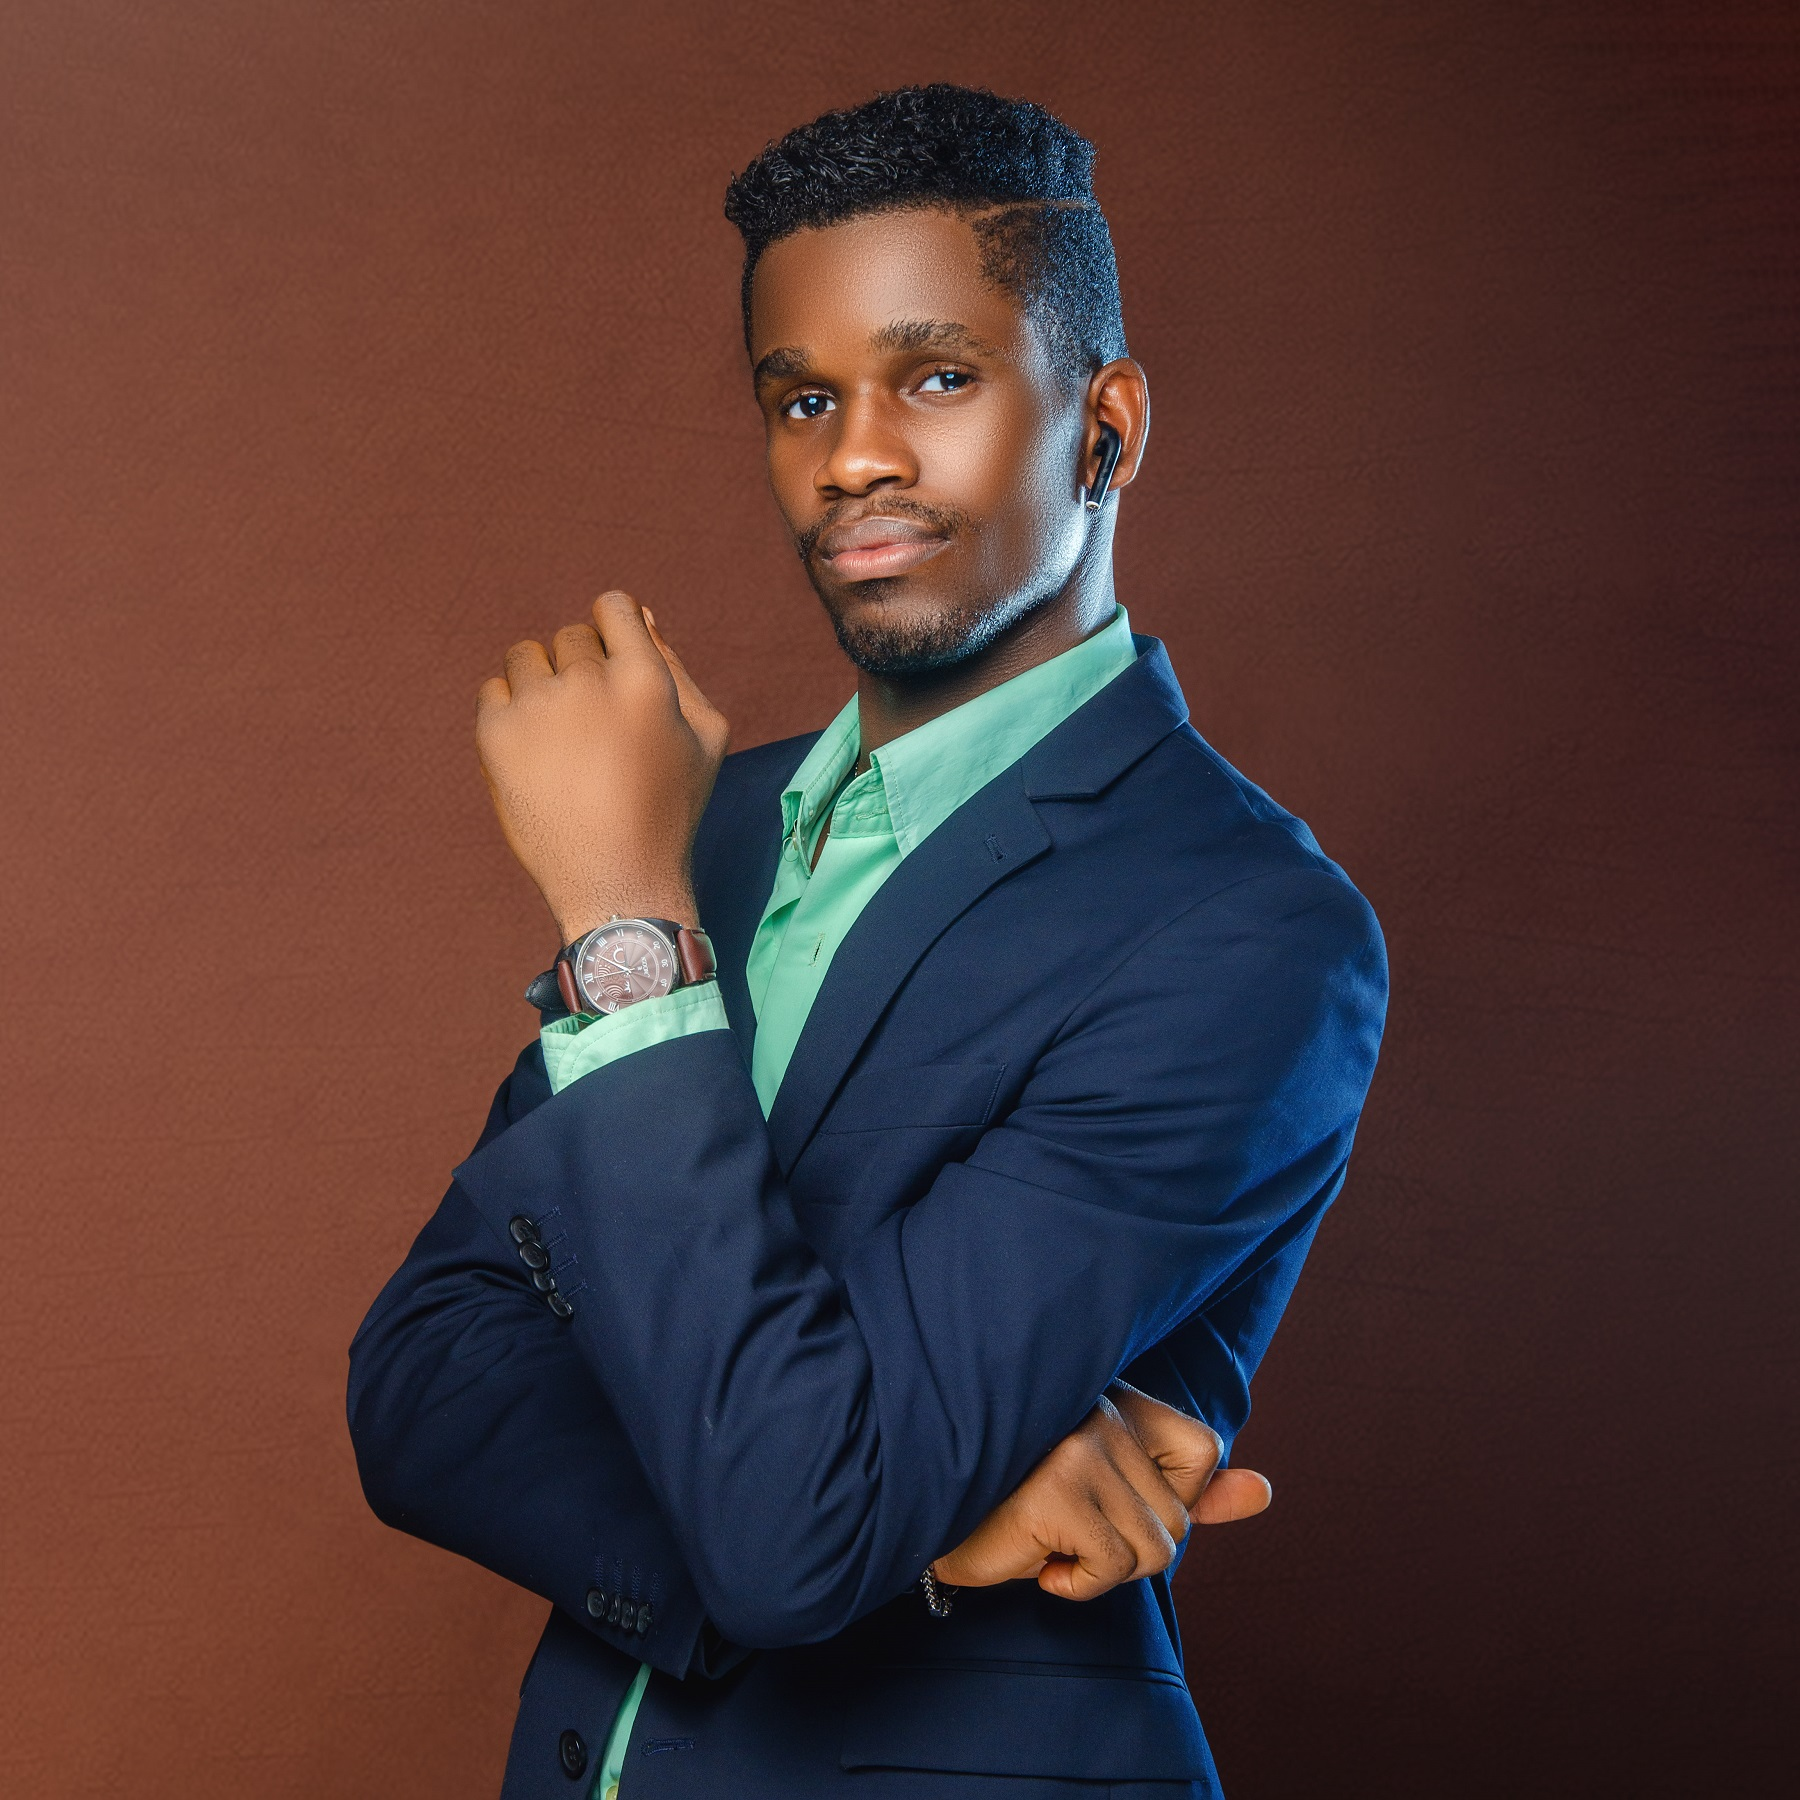 Ab Akpan - Founder and Business Strategist at Kurlor